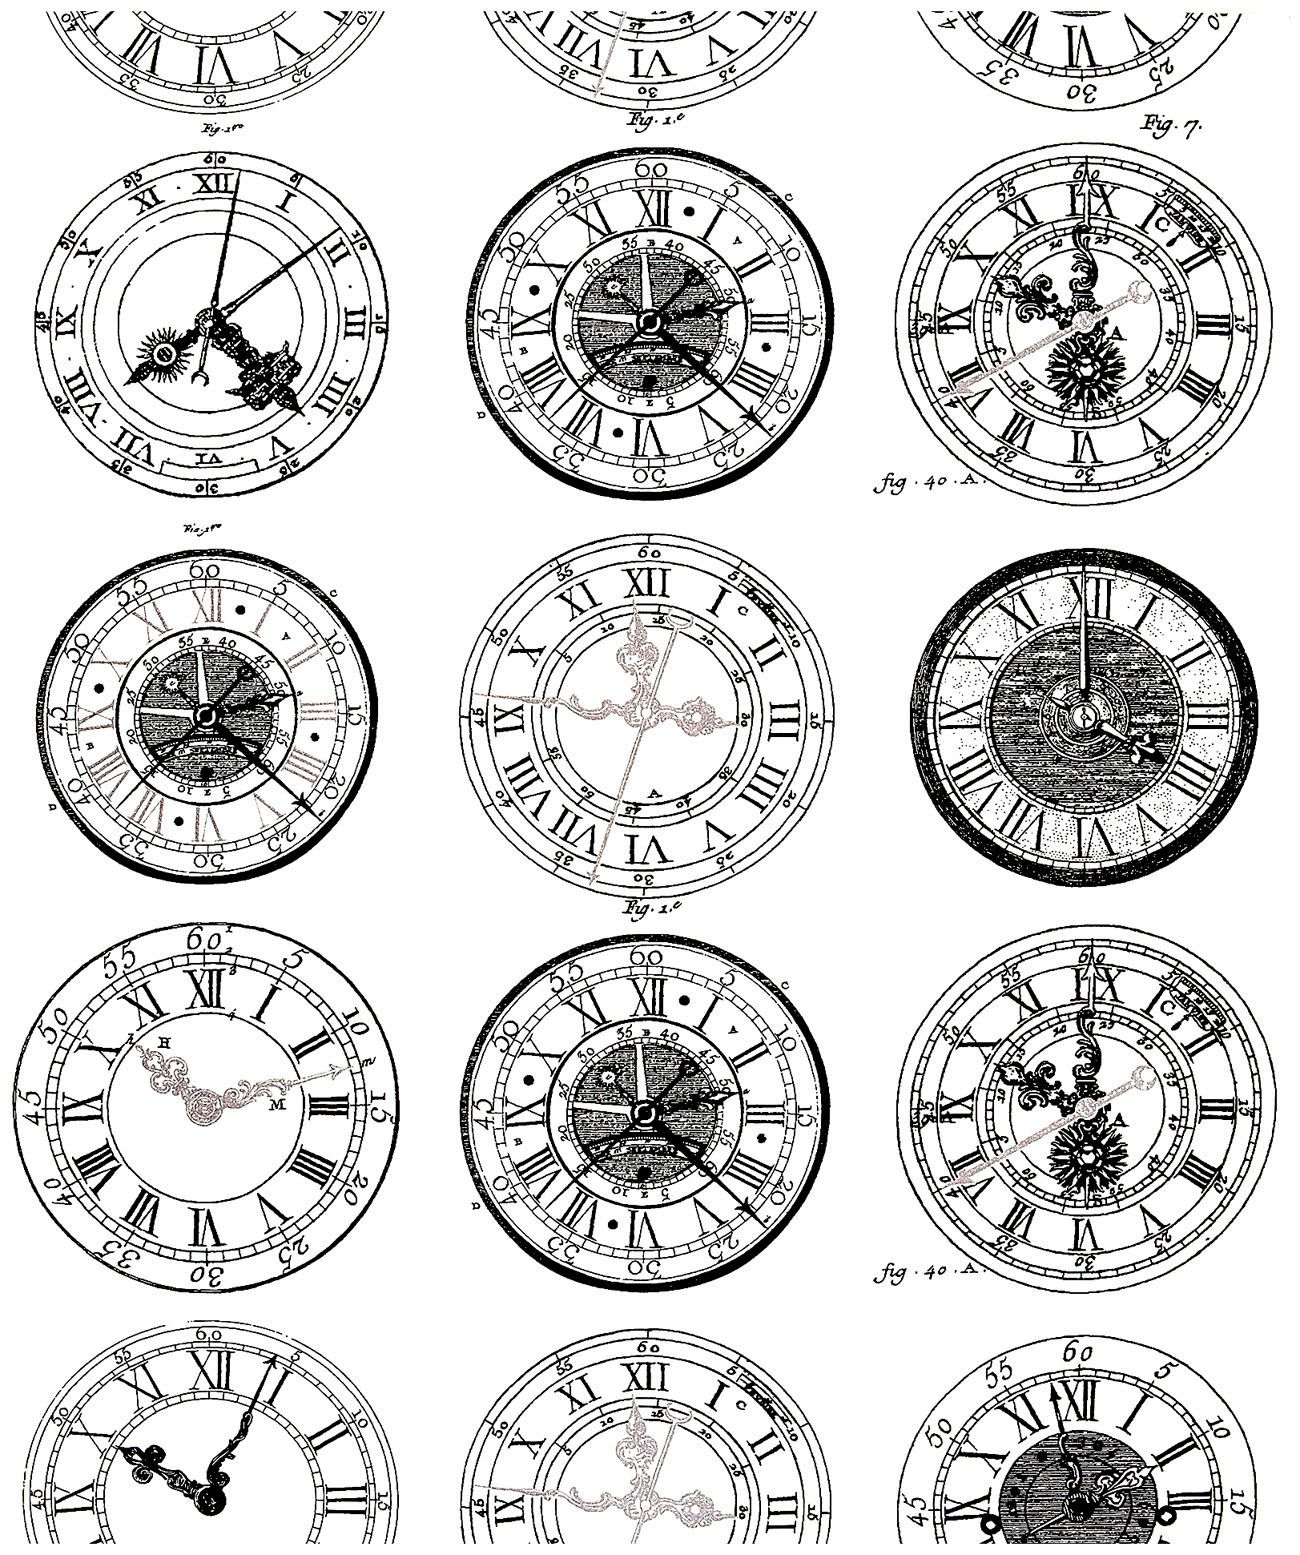 Difficult Anciennes Montres Image With Time Watch From The Gallery Vintage Old Clock Tattoo Clock Drawings Clock Tattoo Design